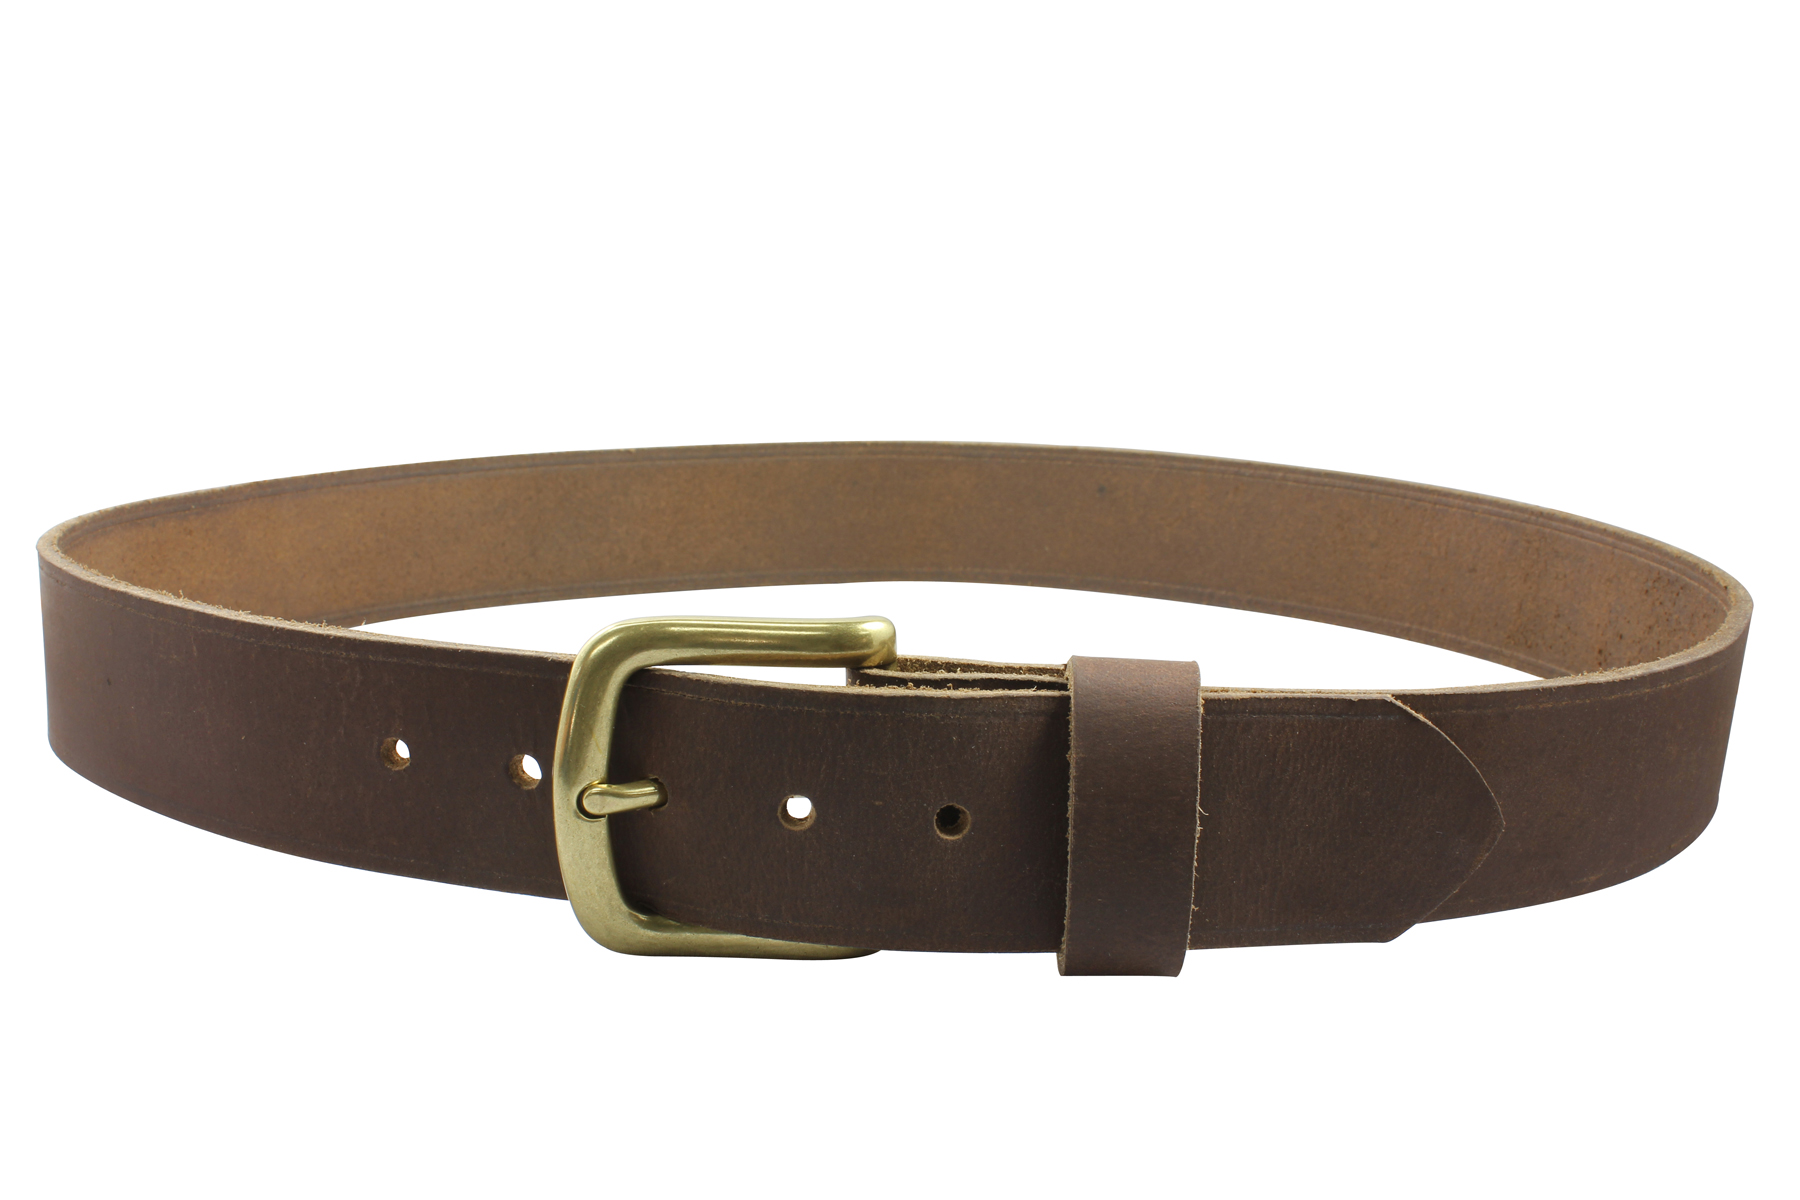 38mm - Rough Cut™ Leather Belt | Bison Designs